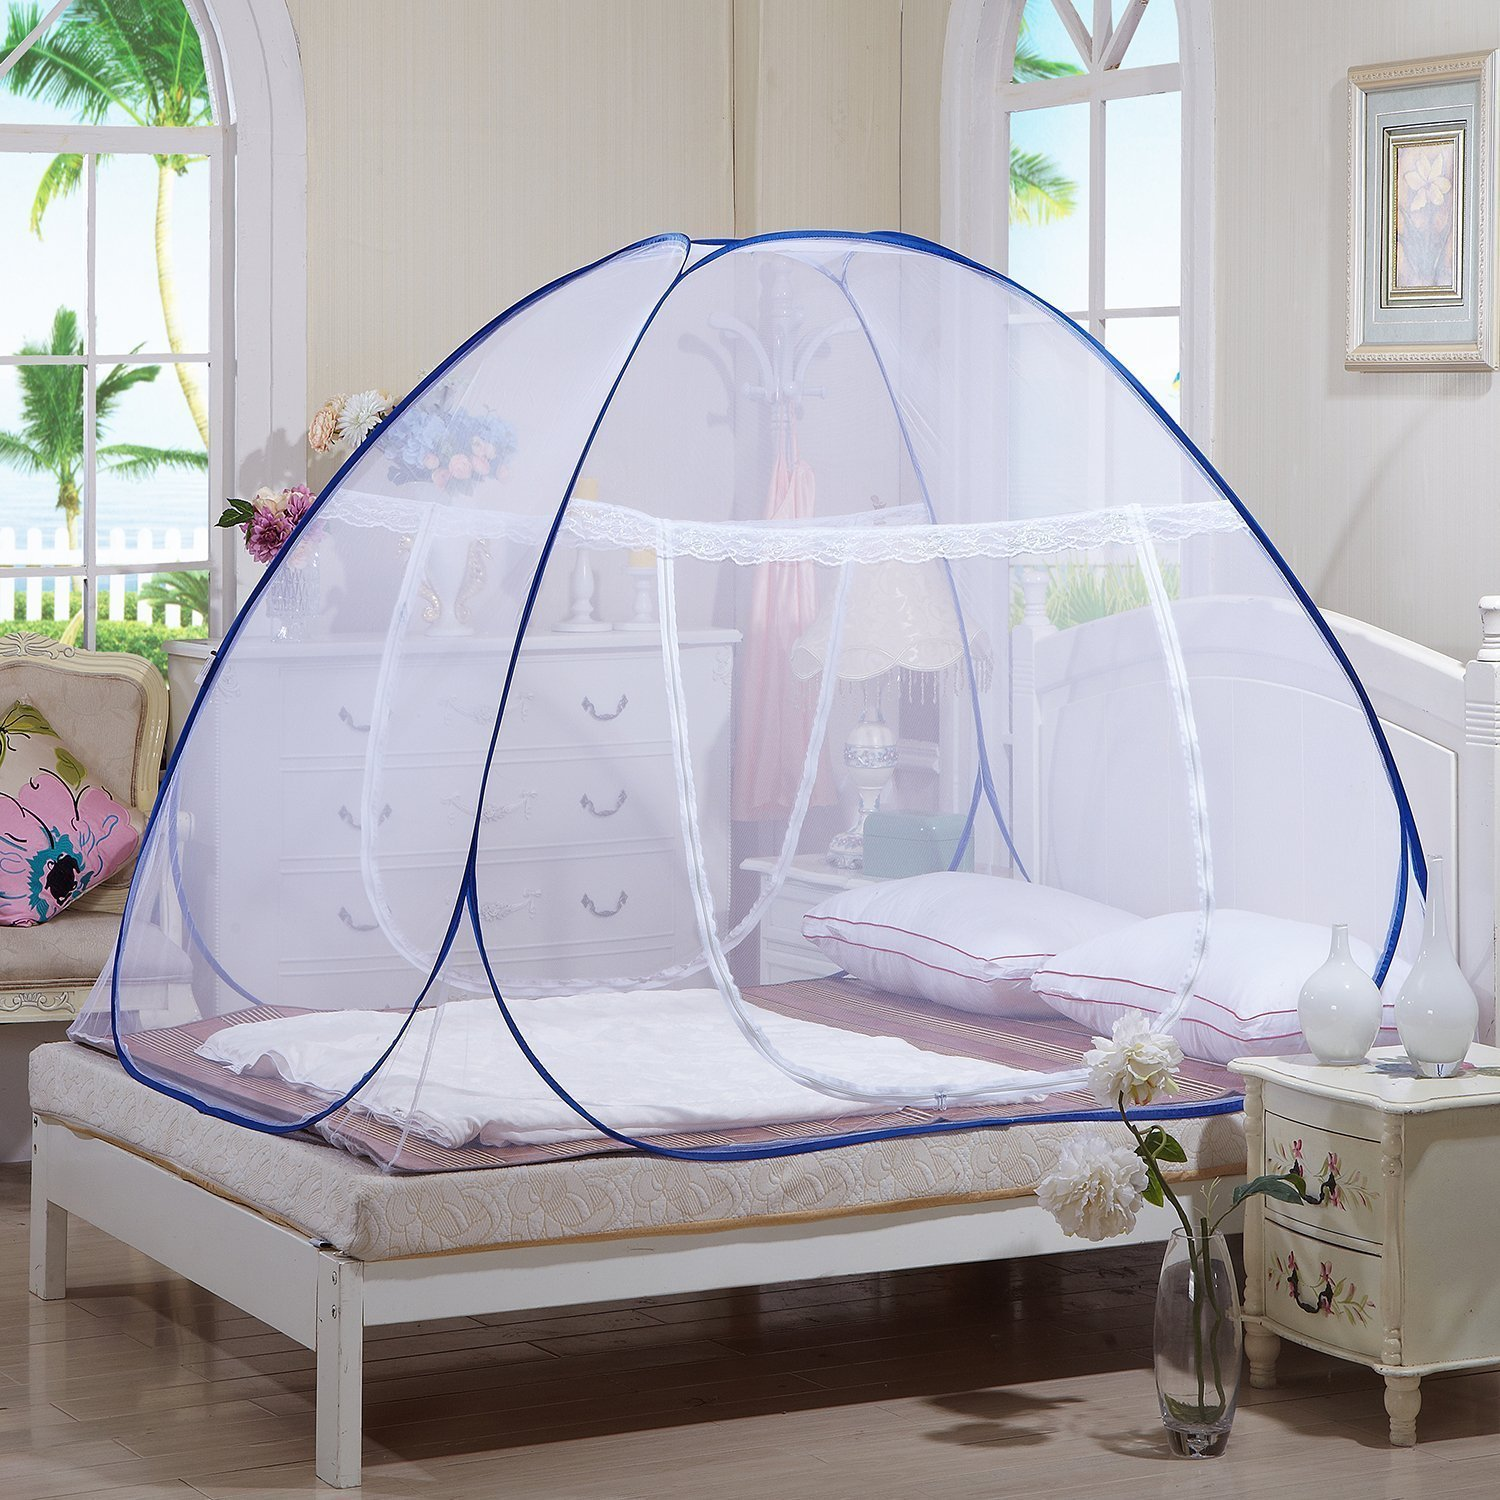 Tailbox Portable Mosquito Net - Sleep Screen Pop-Up Mosquito Net Bed Guard Tent Folding Attached Bottom with Zipper Anti-Mosquito Cloth for Babies Adult Travel Camping (150cm x 200cm)